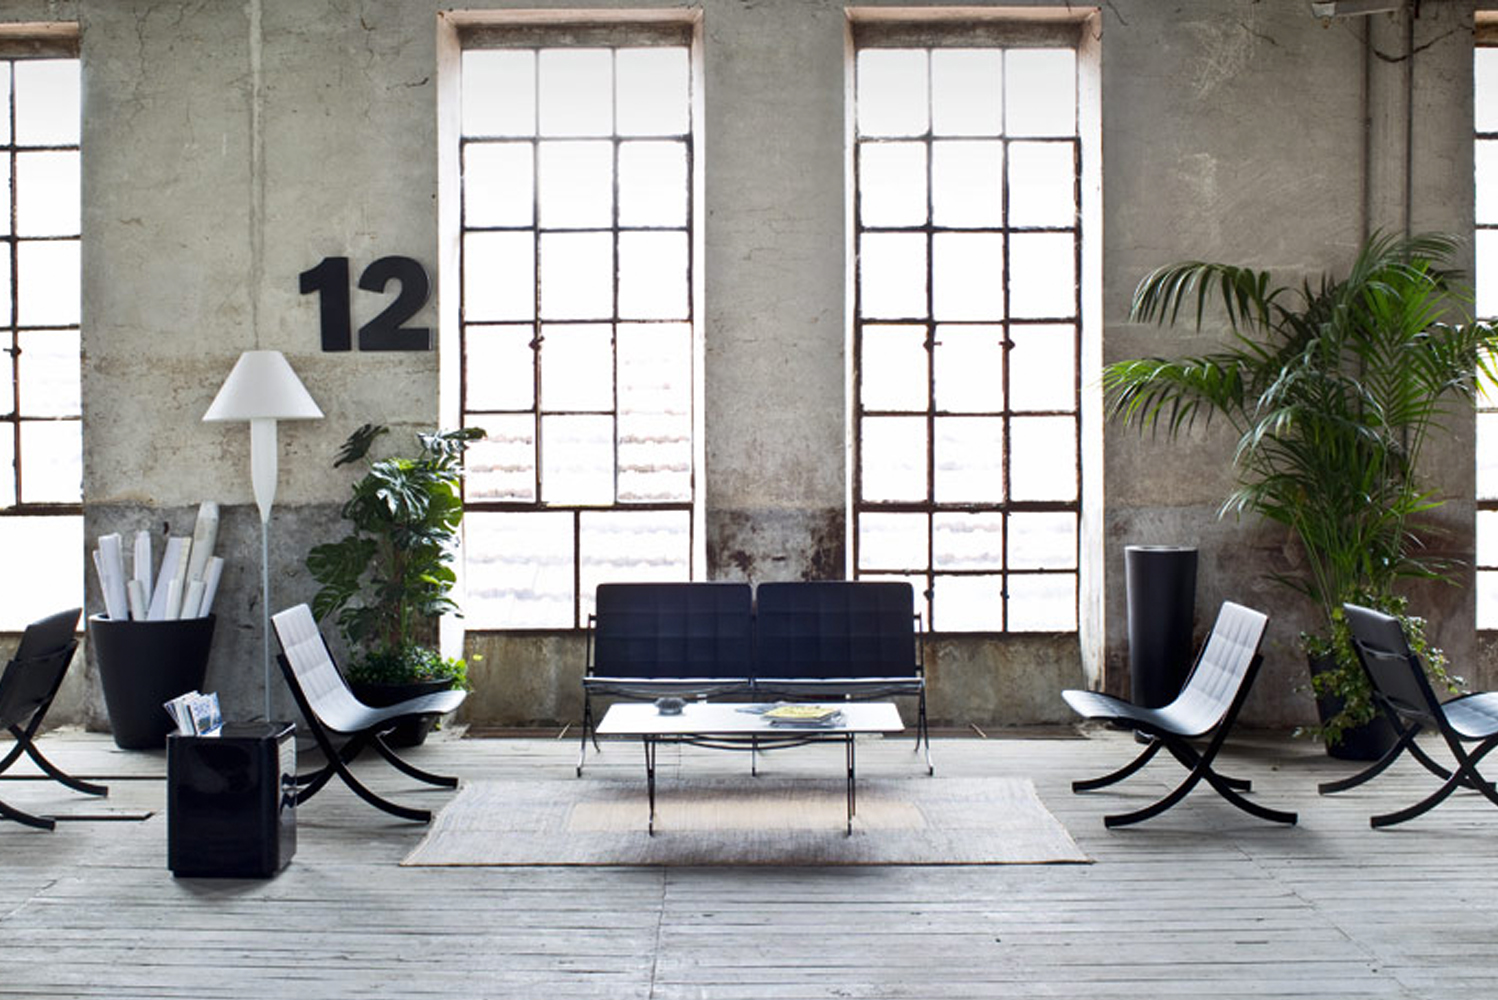 Mies van der Rohe's Barcelona chair was re-interpreted by Deep Design for Italian brand Serralunga.